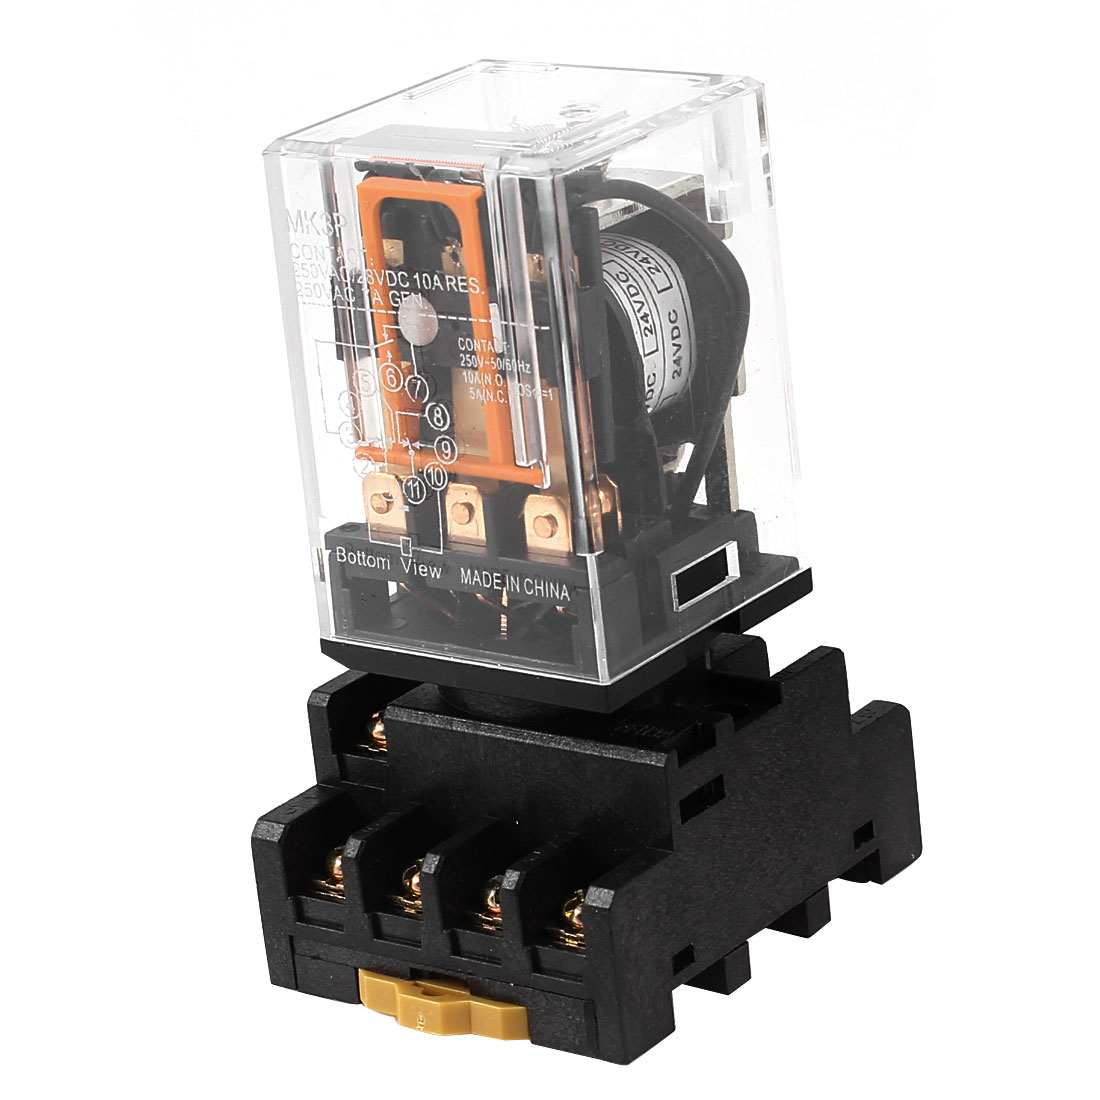 Mk3p  24V 11 Pins 3Pdt Coil General Purpose Electromagnetic Power Relay W 35Mm Din Rail  Socket Base din rail mount 4pdt 14 pin general purpose relay ac220v coil w socket